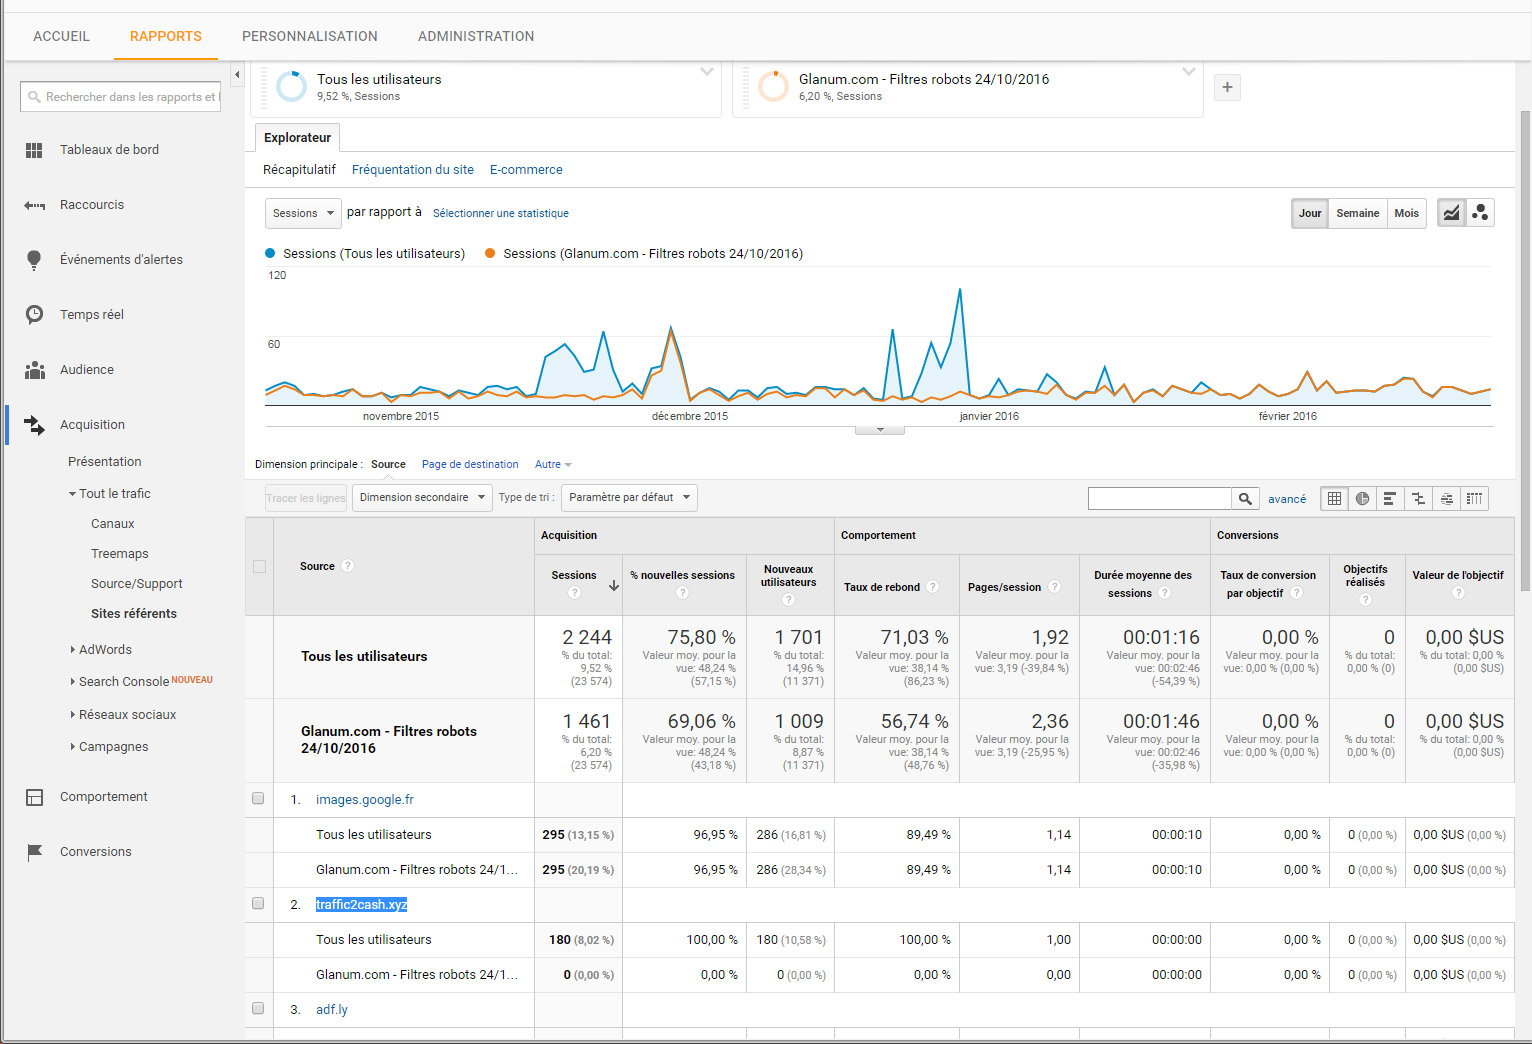 filtre anti spam Google Analytics site référents